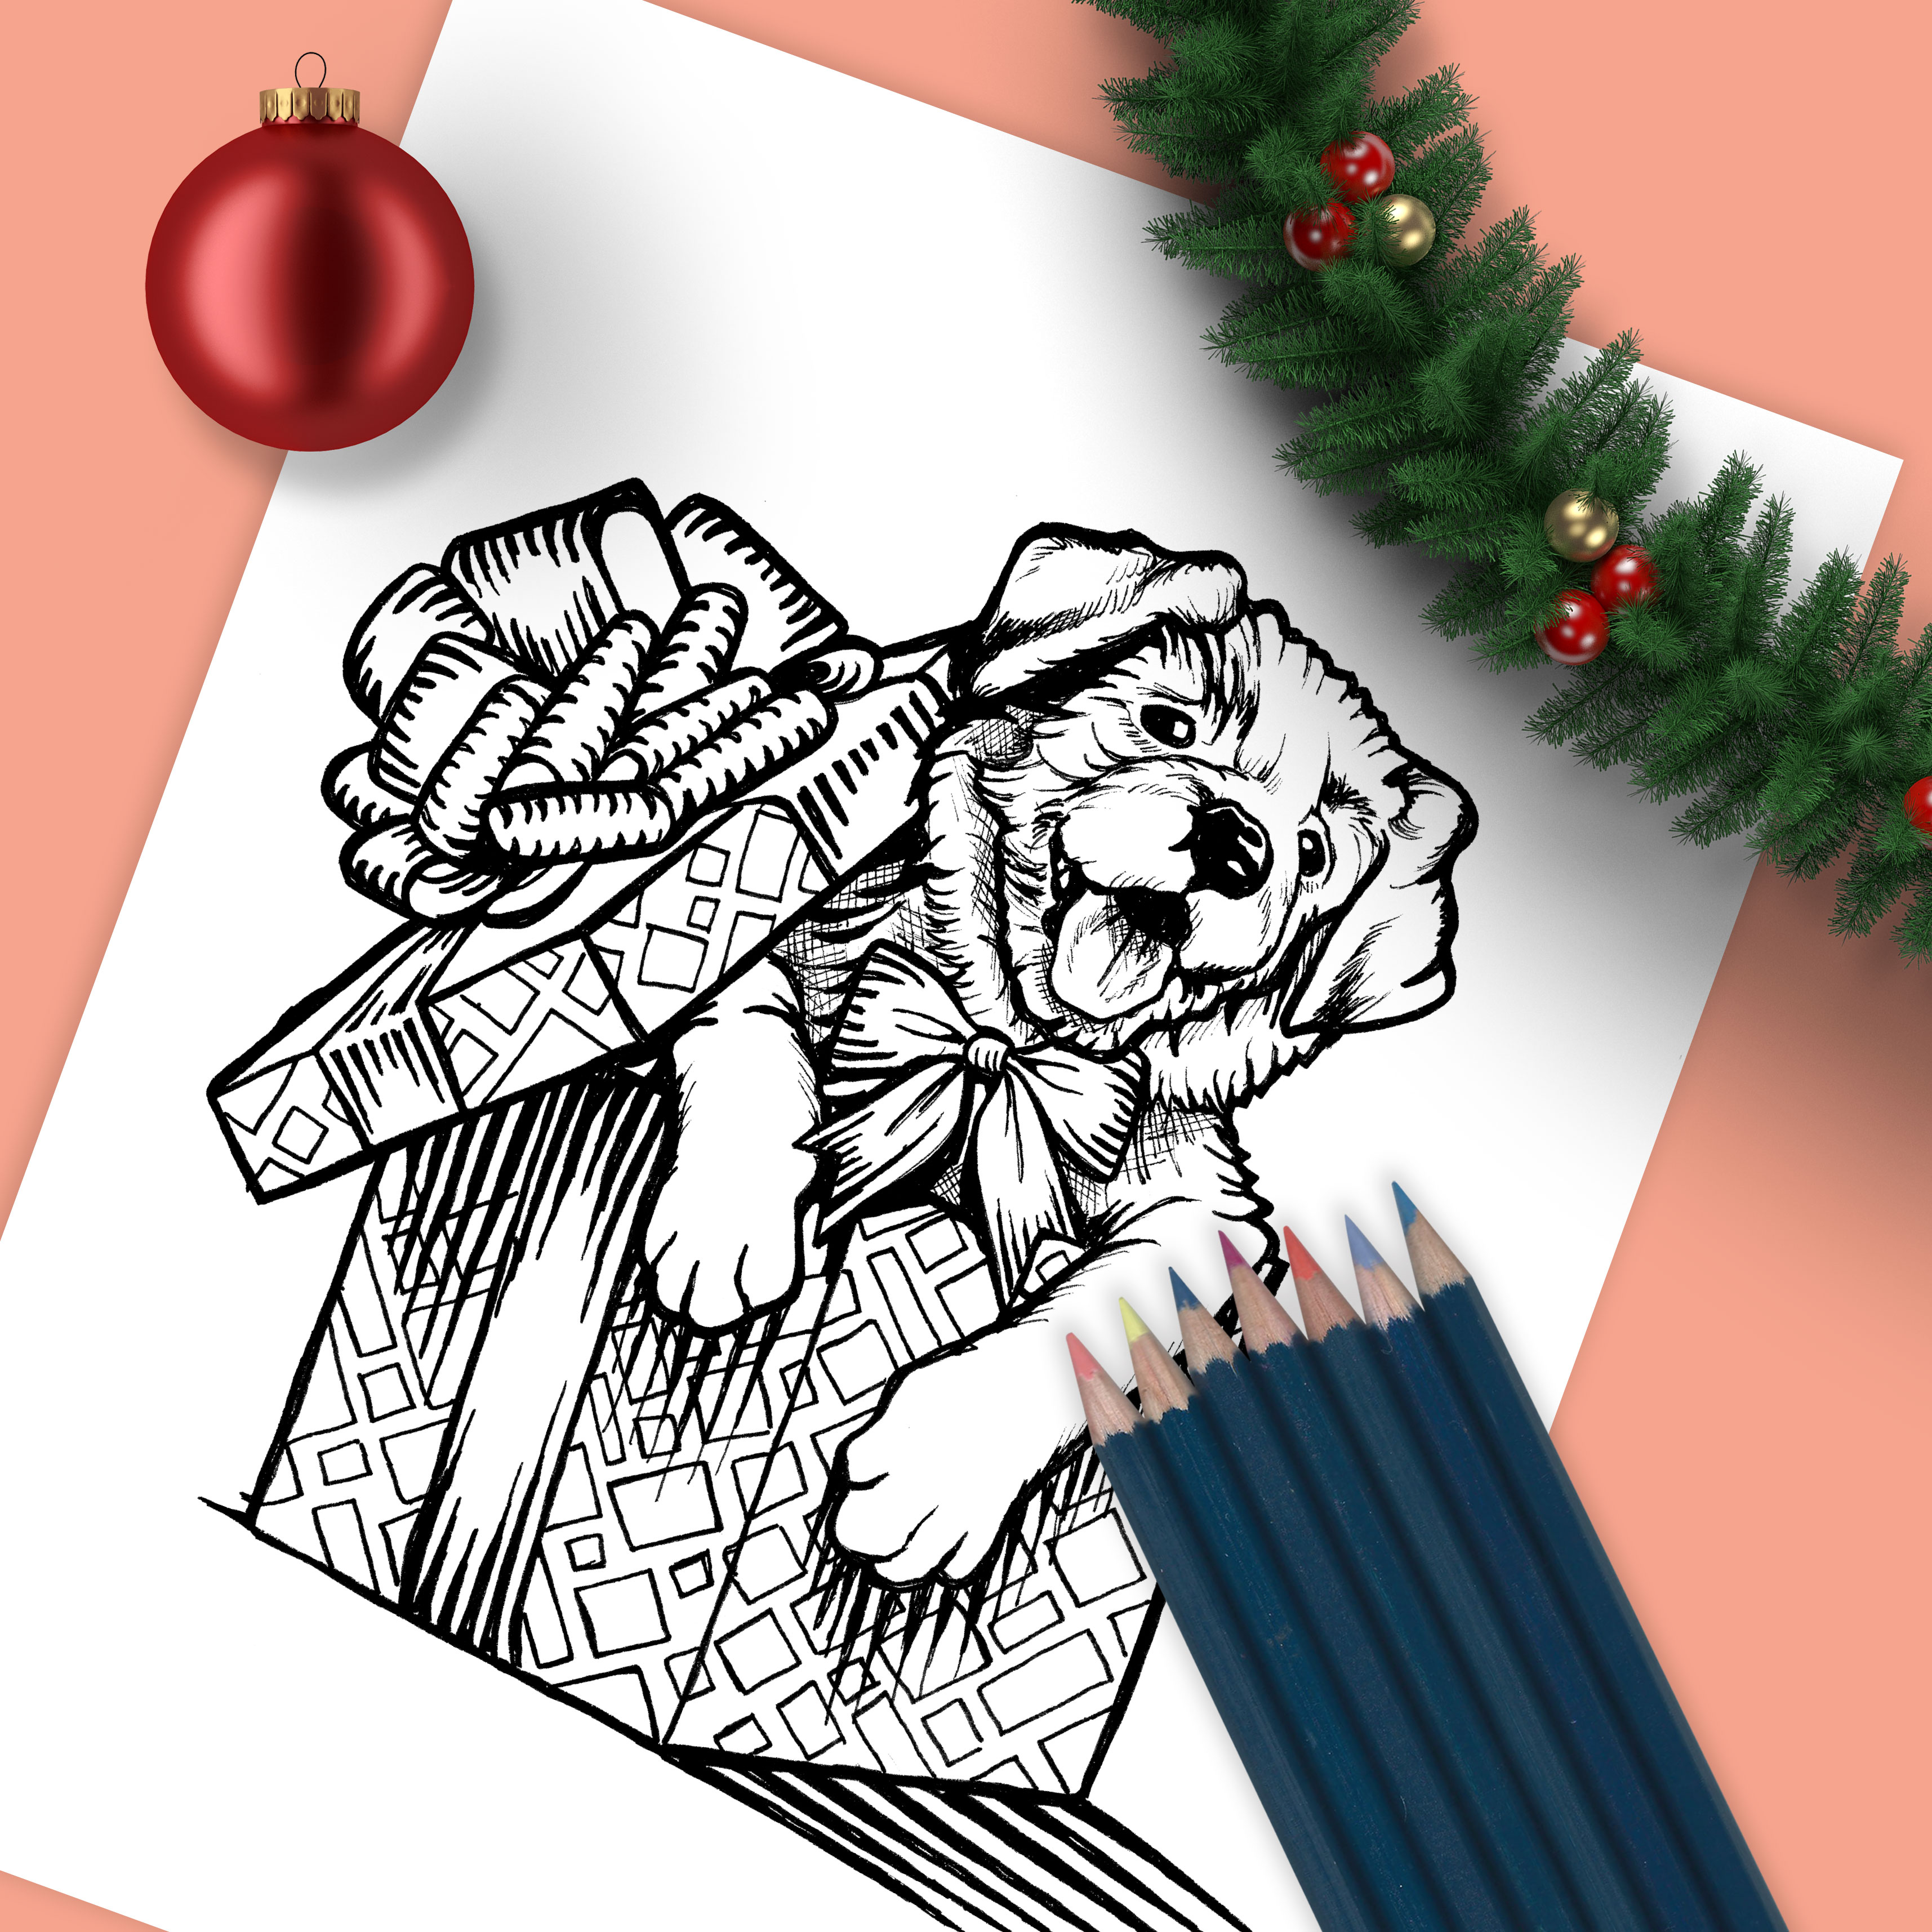 Christmas Puppy Drawing Sean M Geyer